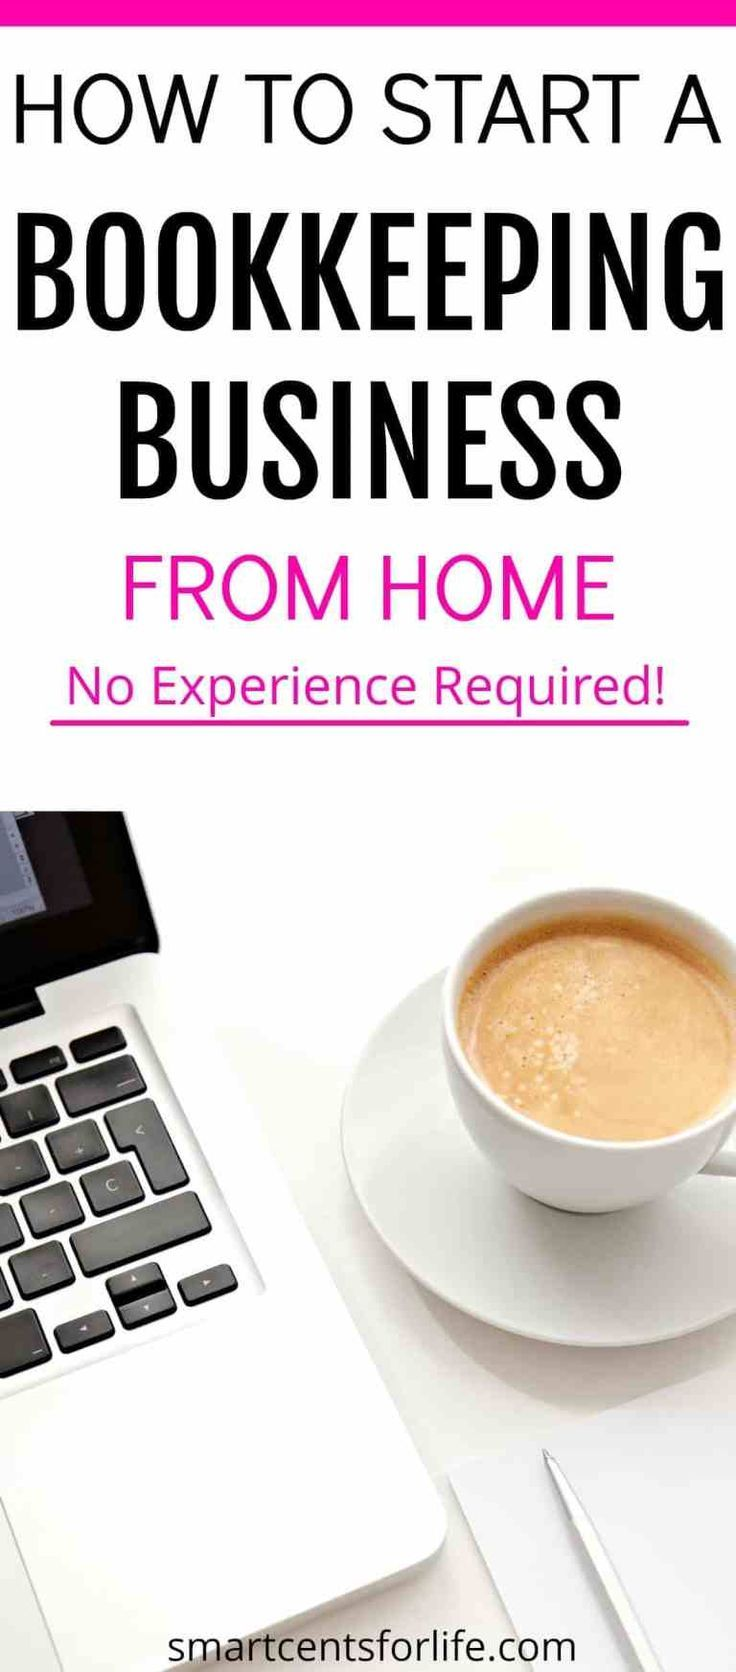 How to Make Money from Home as Bookkeeper – No Experience Needed